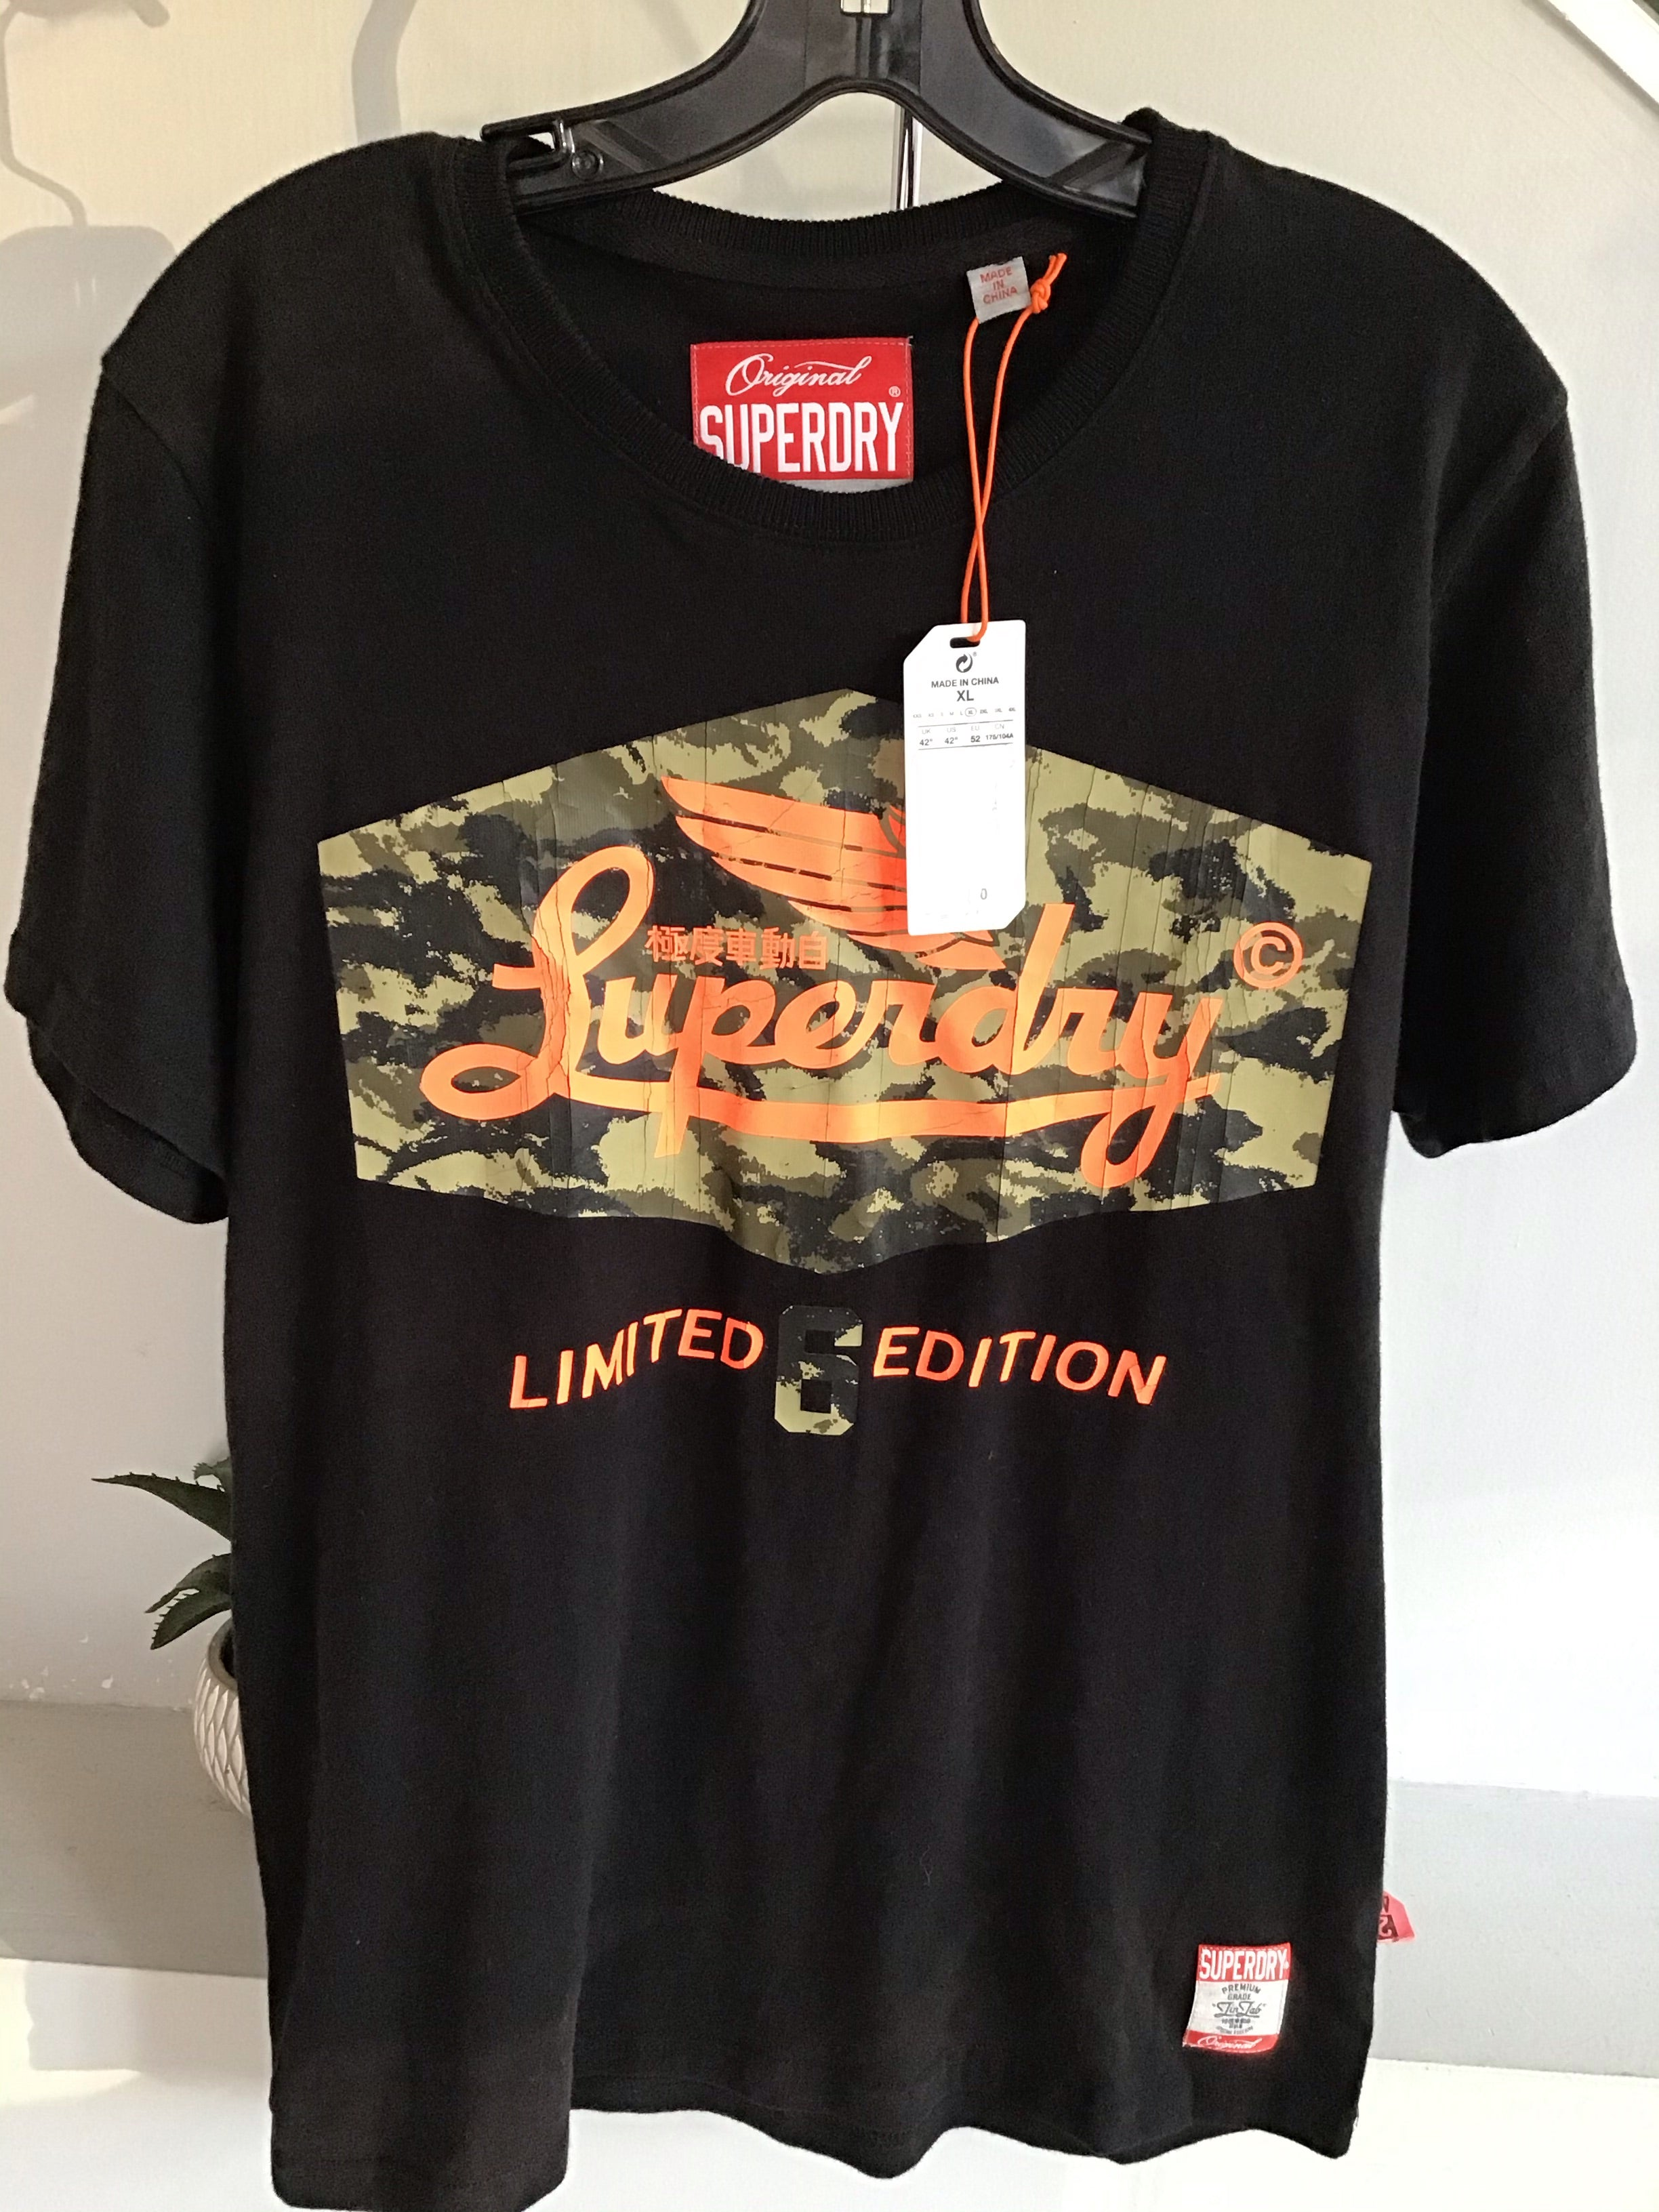 Super dry men's graphic limited edition tee